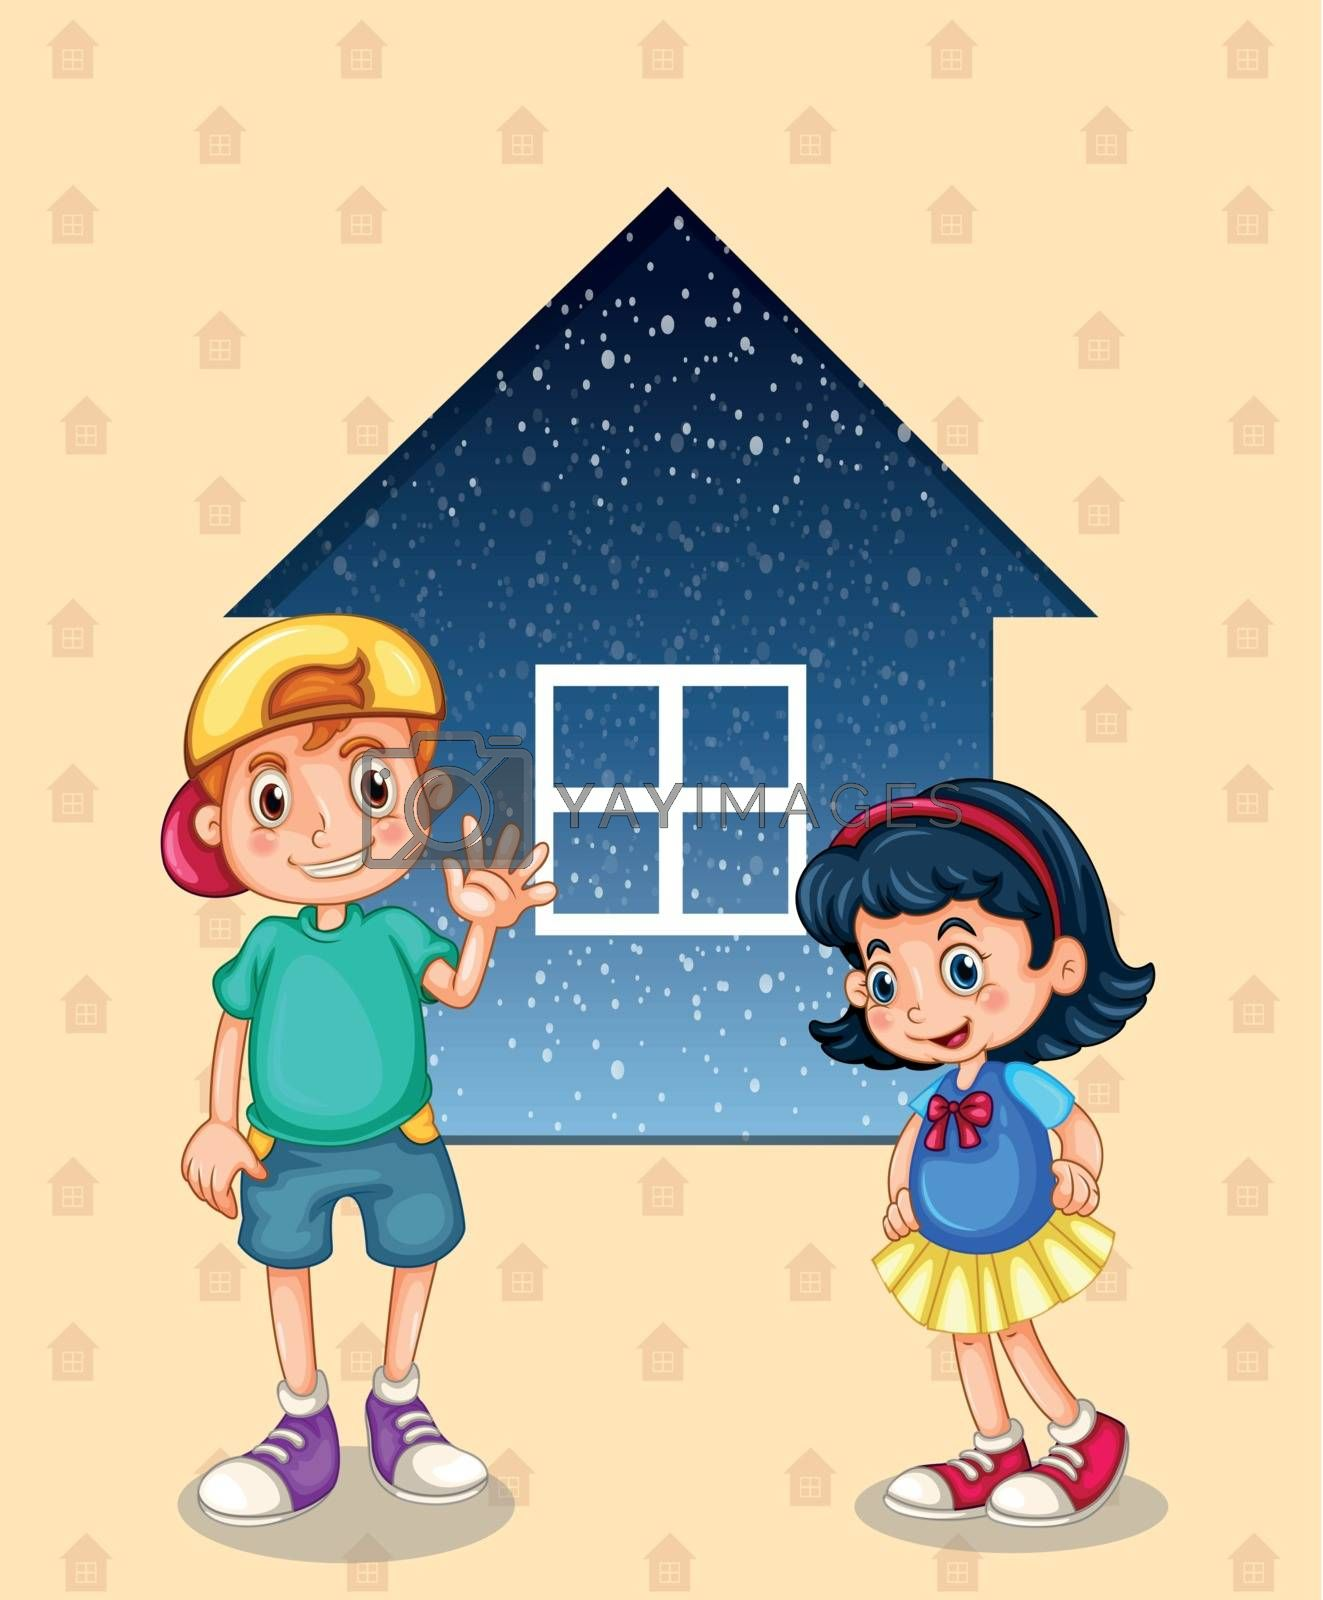 Illustration of a small boy and a small girl standing in front of the small house